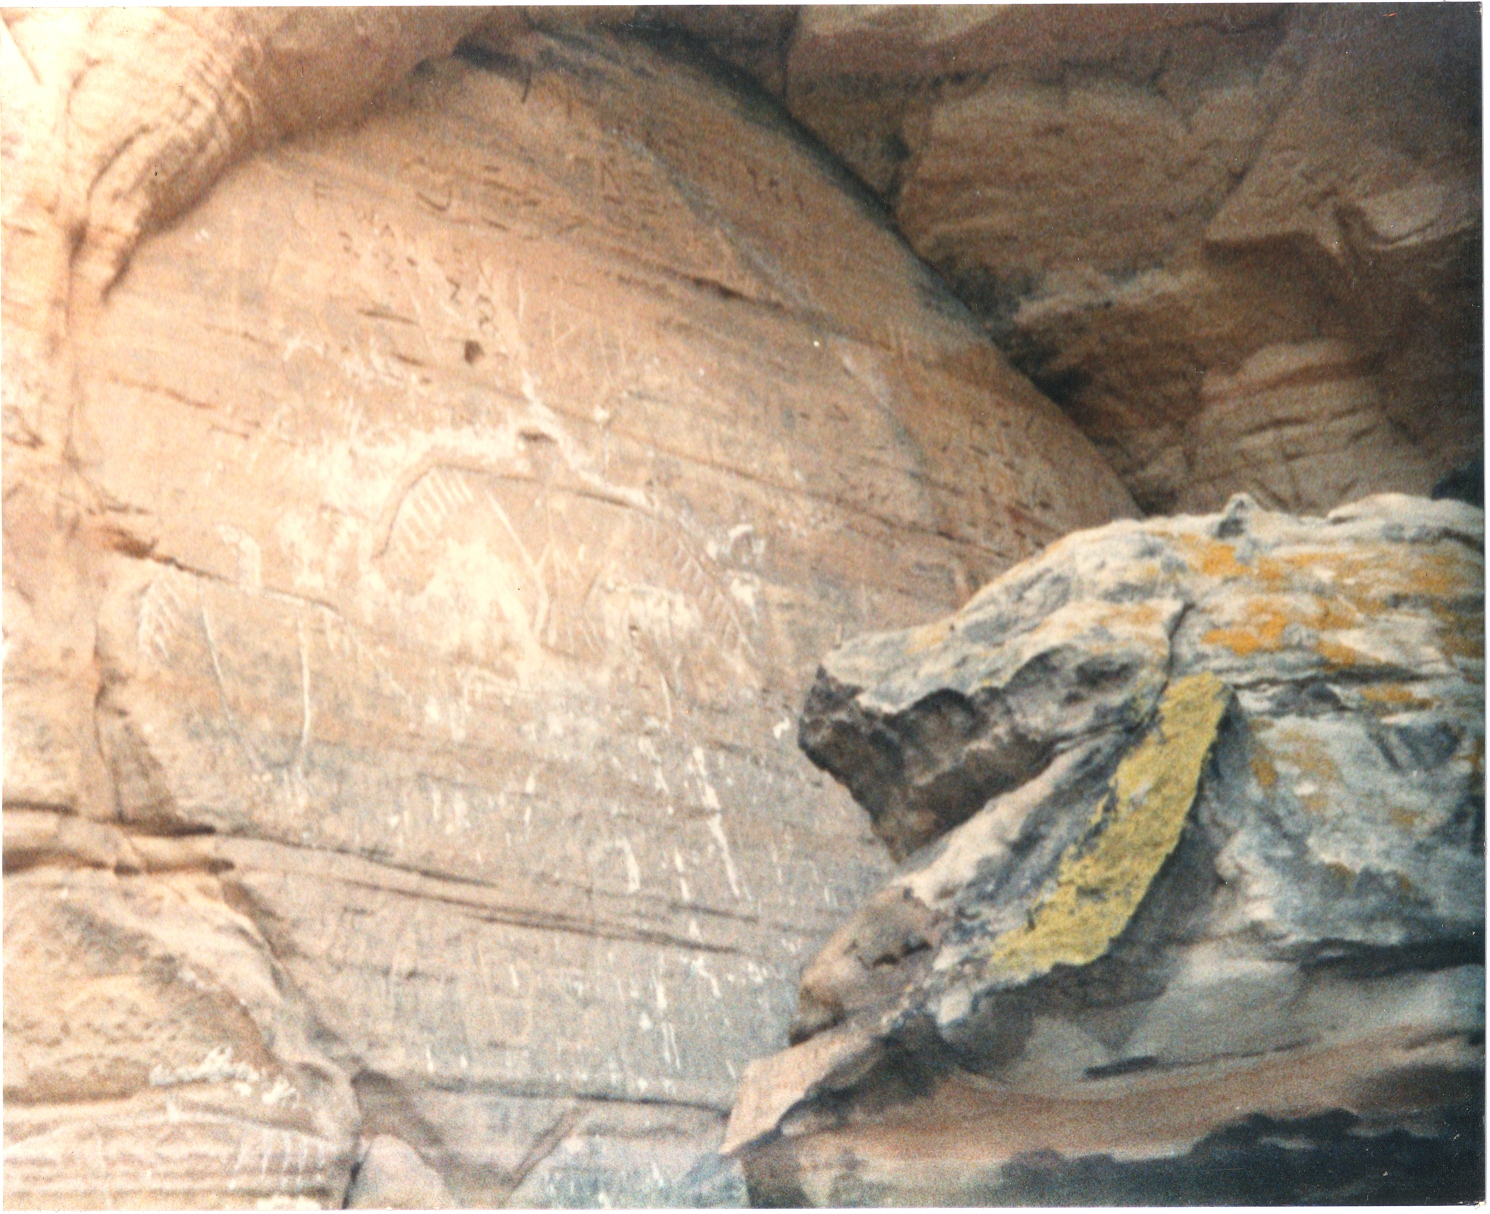 Thunderbirds carved in sandstone wall at Twin Bluff, Juneau County, Wisconsin, by prehistoric artist(s)